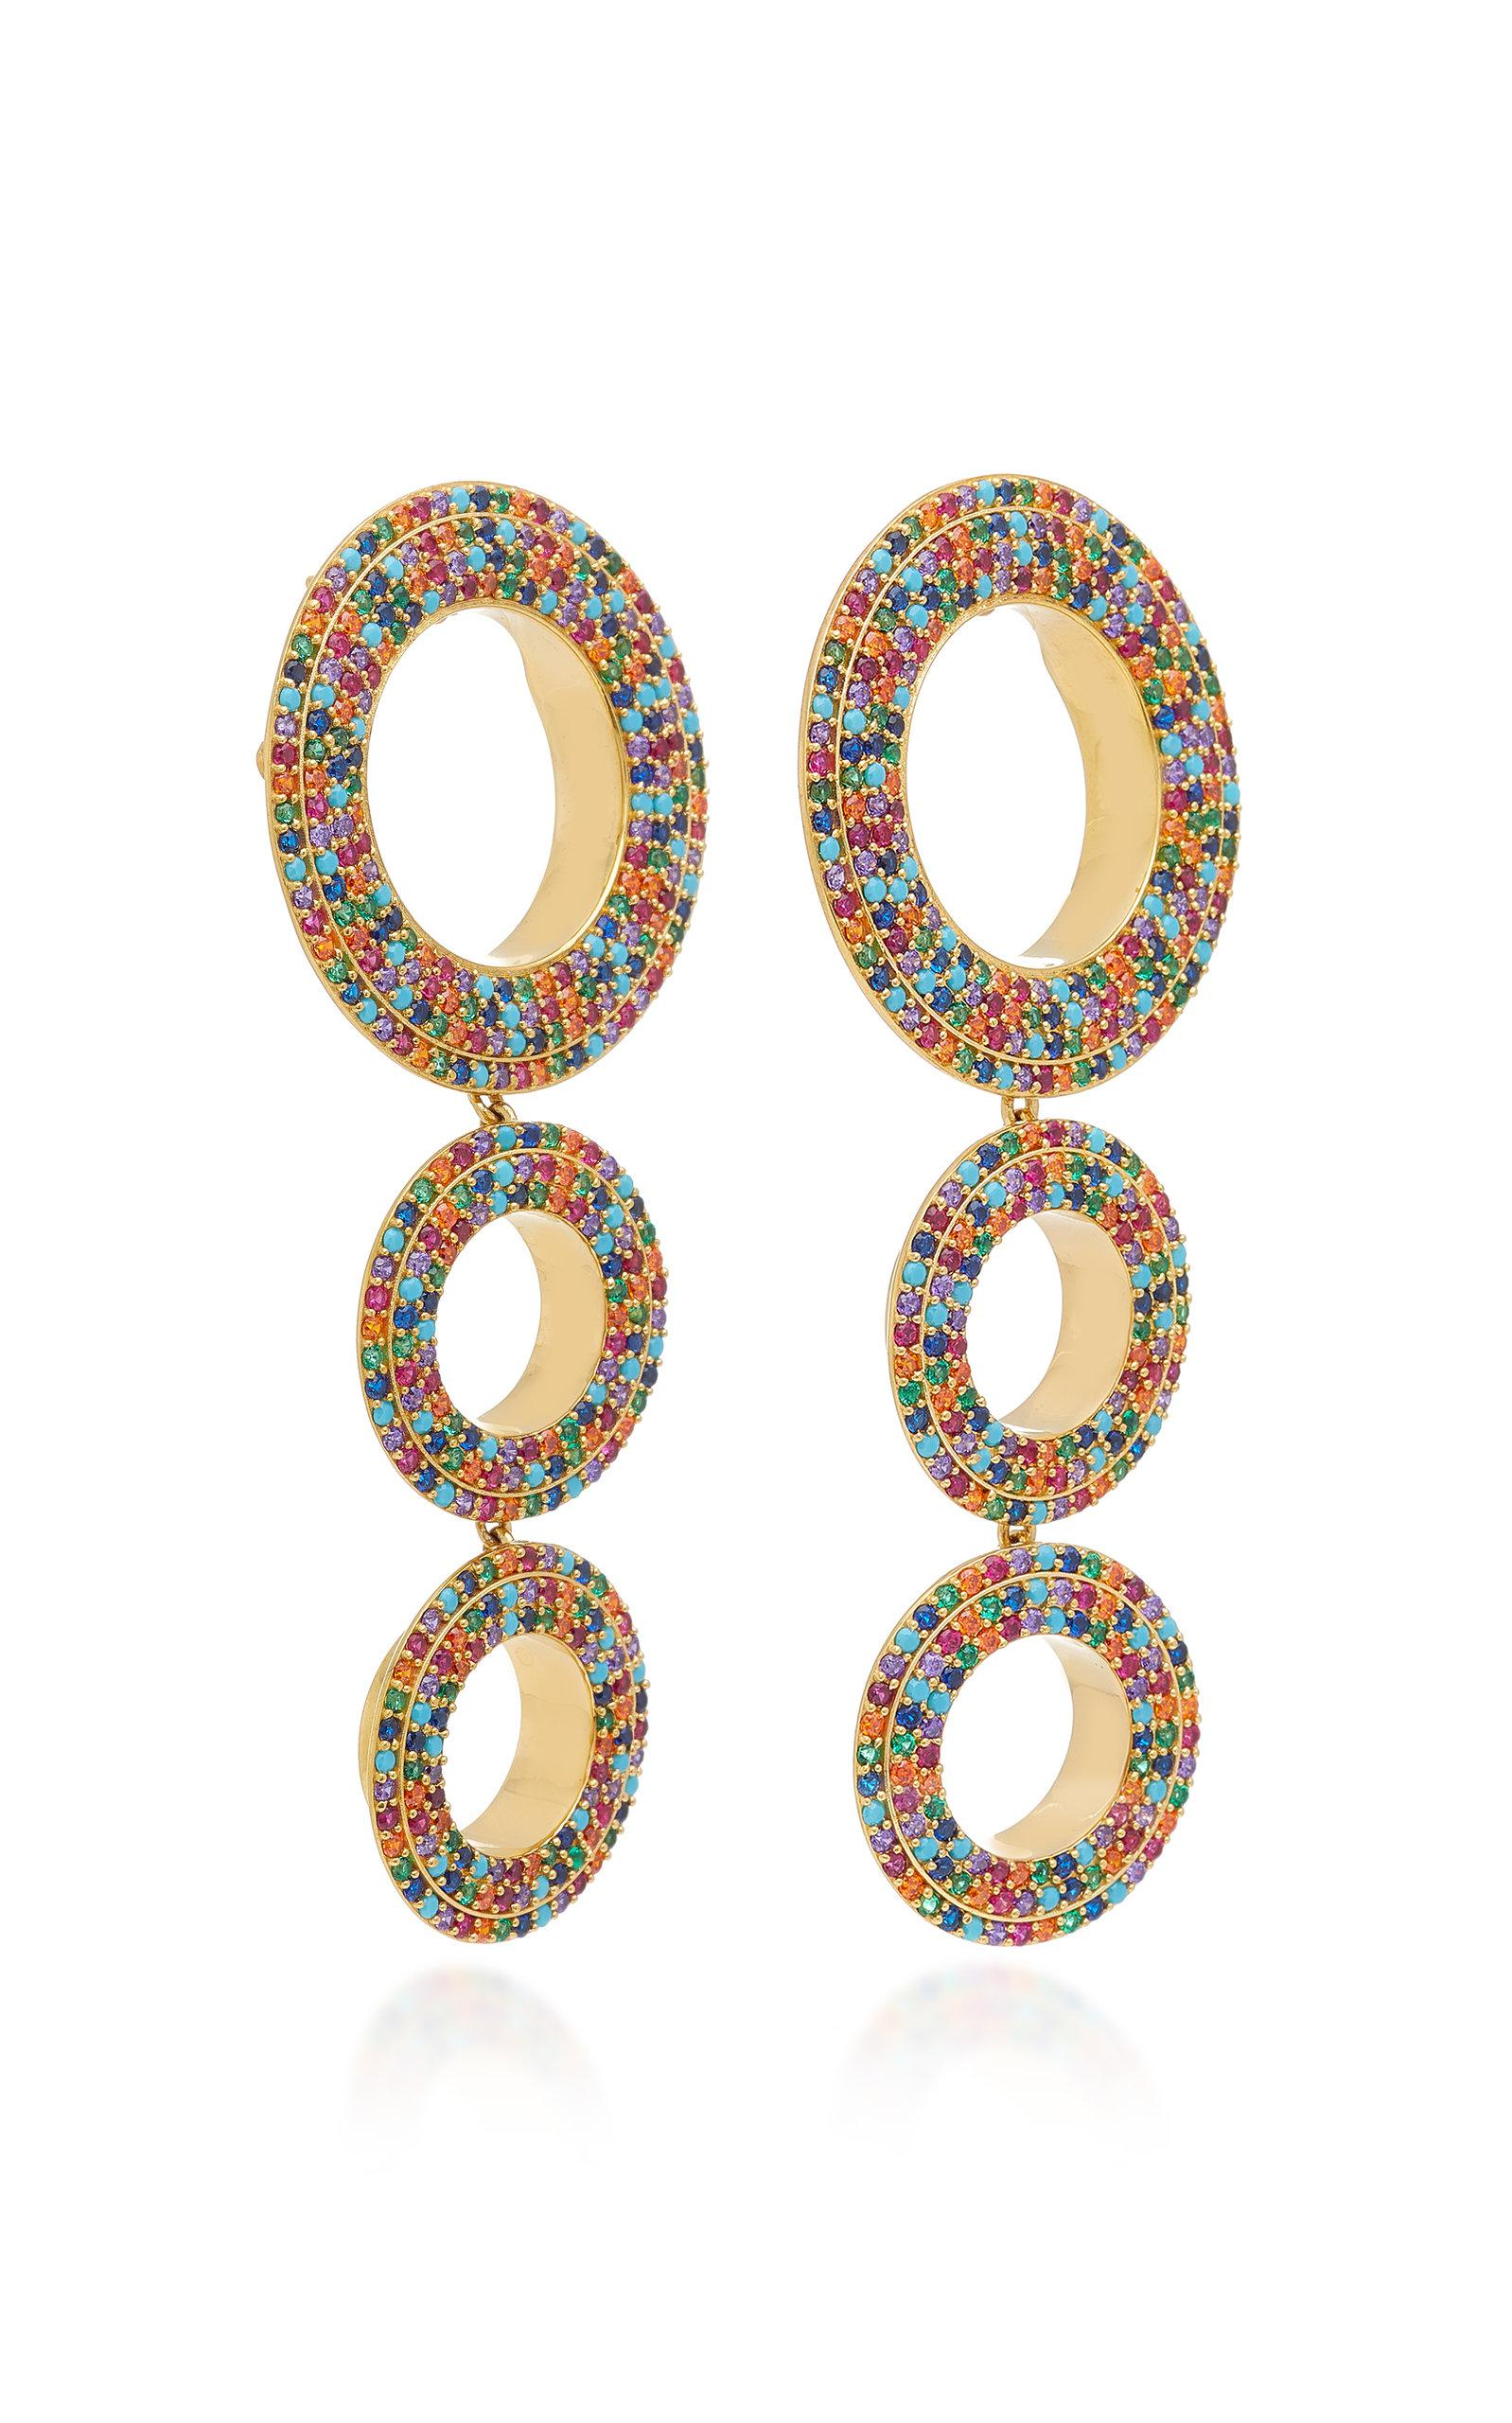 Joanna Laura Constantine Grommets Statement Rainbow Earrings in Gold-Plated Brass with Multicolored Stones dUOU0dw